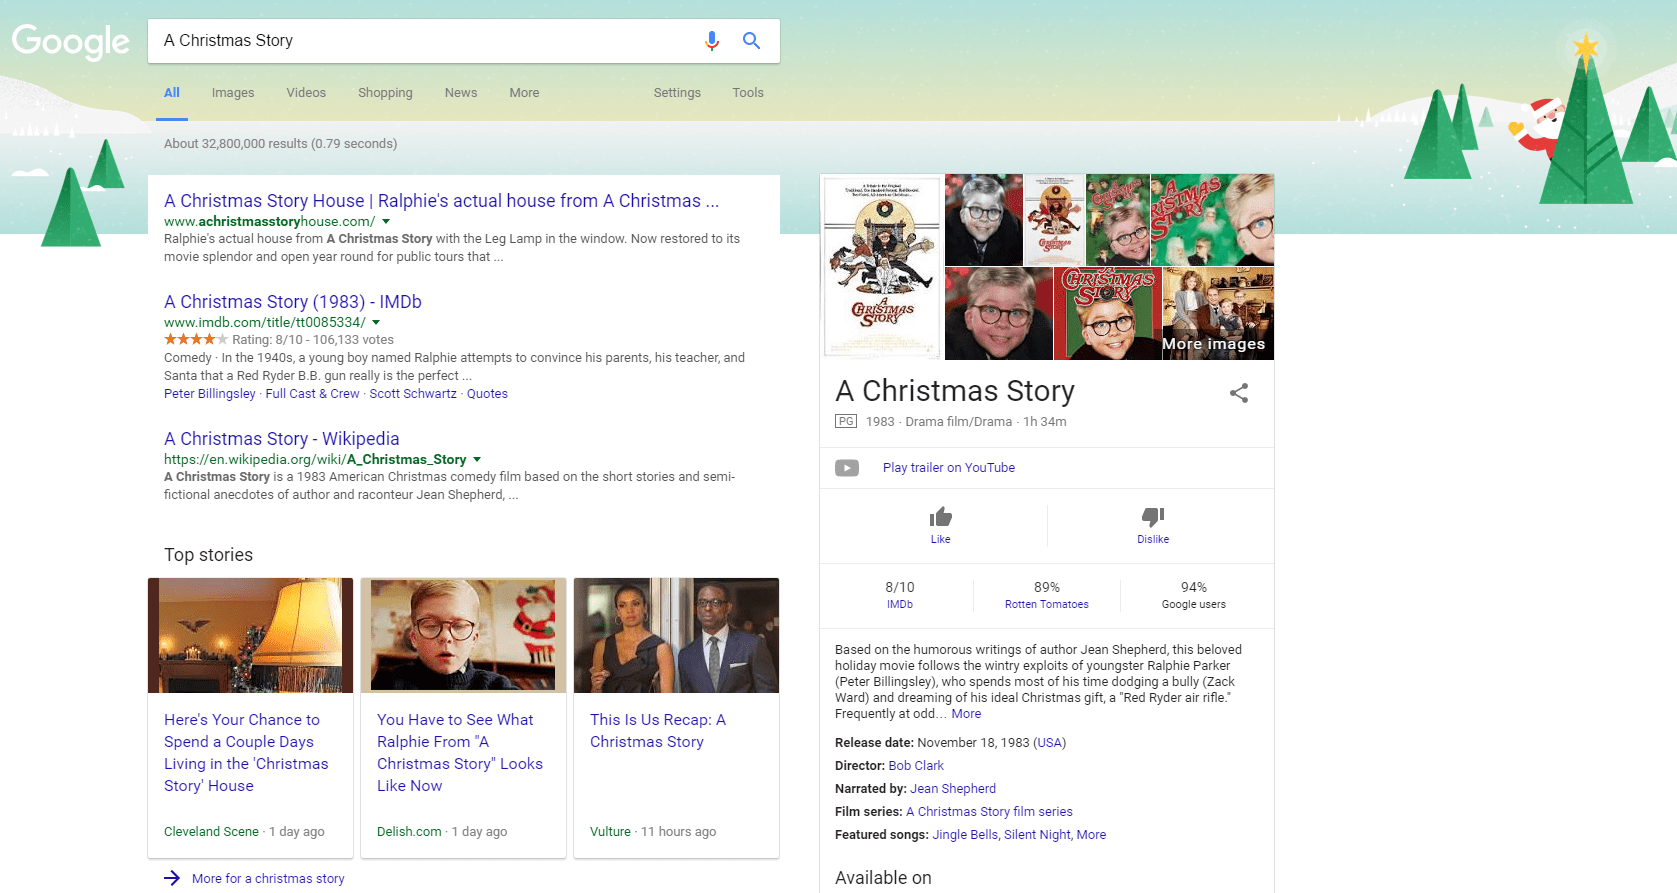 new Google desktop search interface example - Xanjero